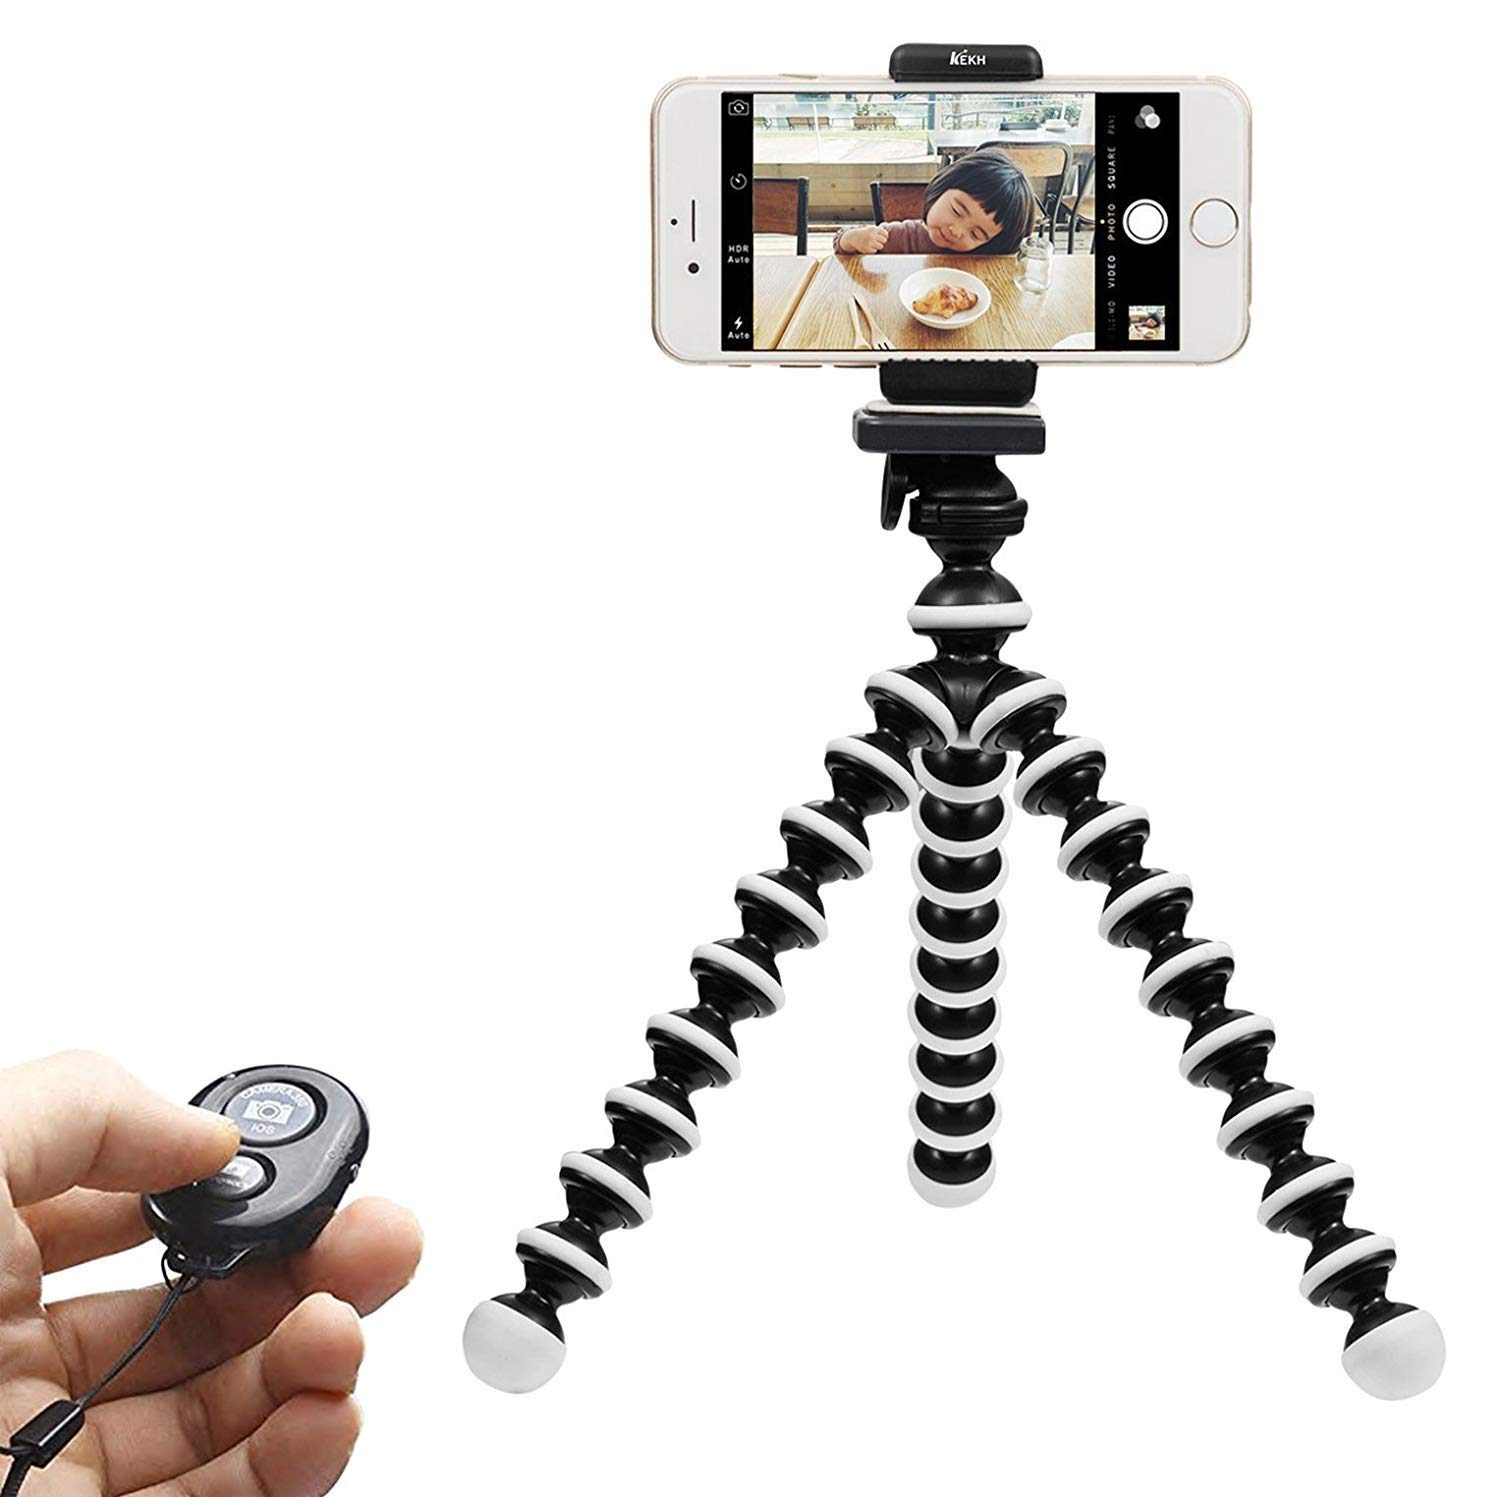 Phone Tripod, WIYFA Portable and Adjustable Tripod Stand Holder with Bluetooth Remote for iPhone, Android Phone,Camera with Universal Clip and Remote (Large Size)